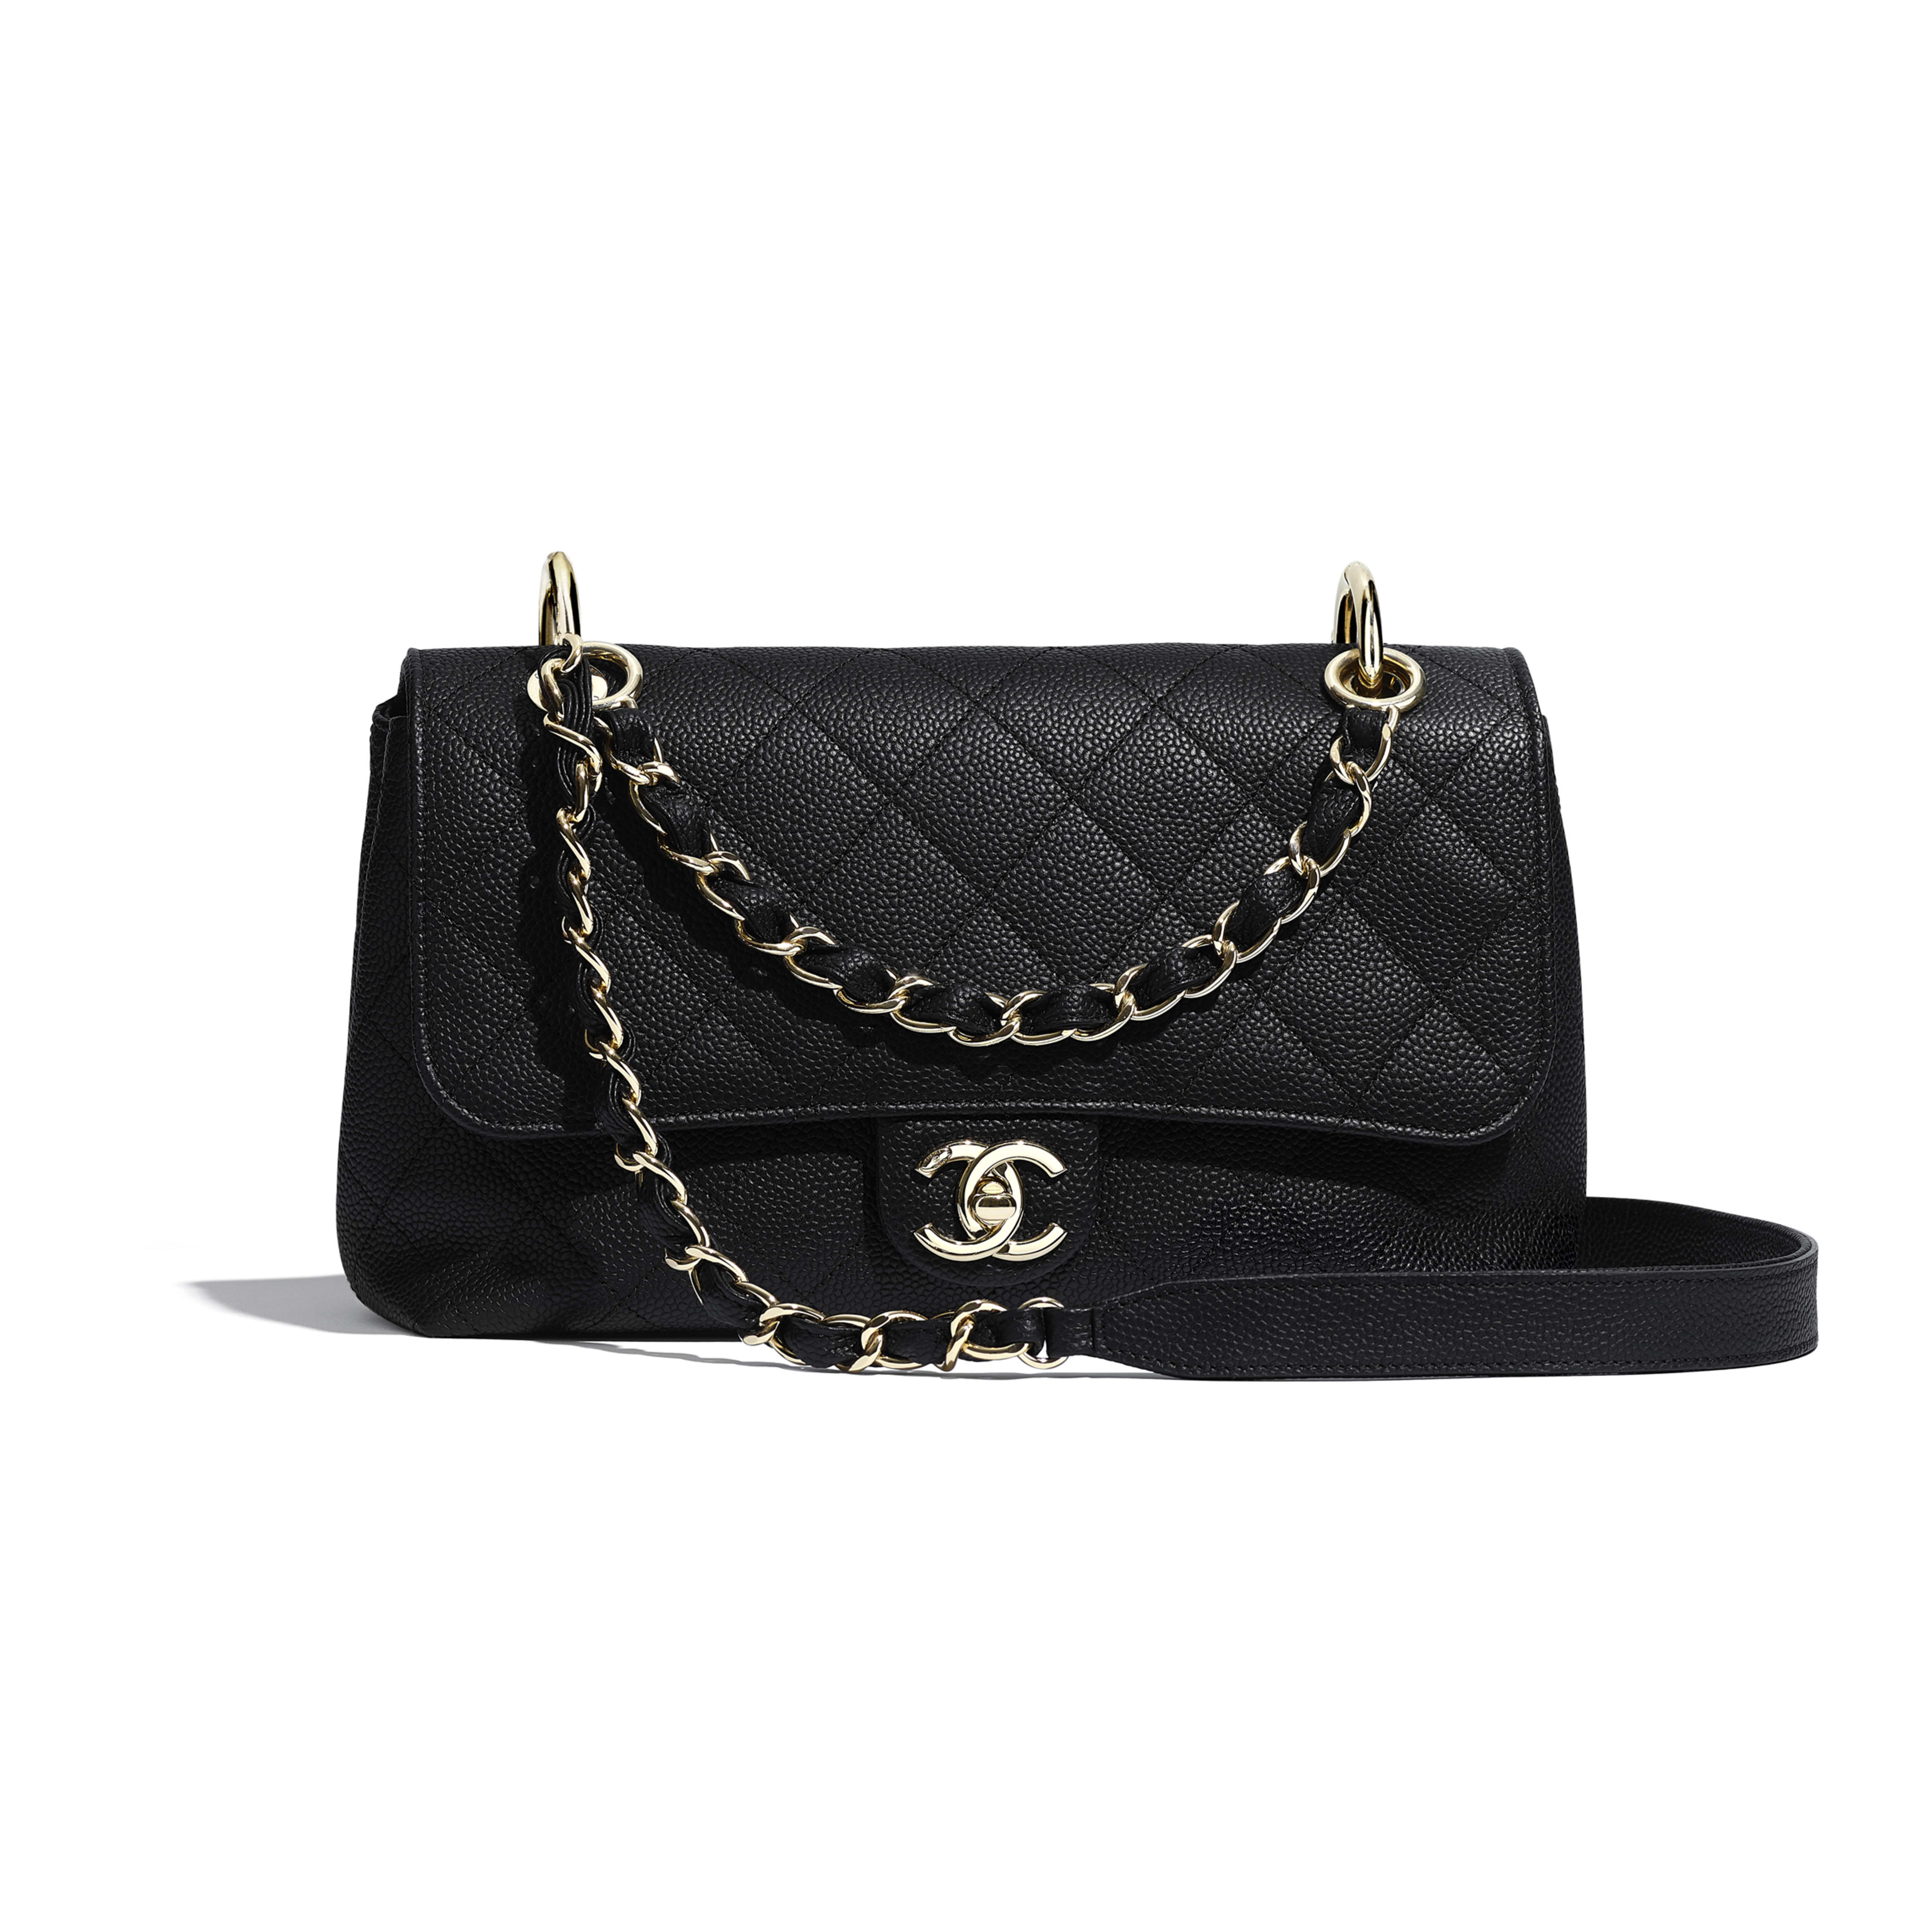 Flap Bag - Black - Grained Calfskin & Gold-Tone Metal - Default view - see full sized version